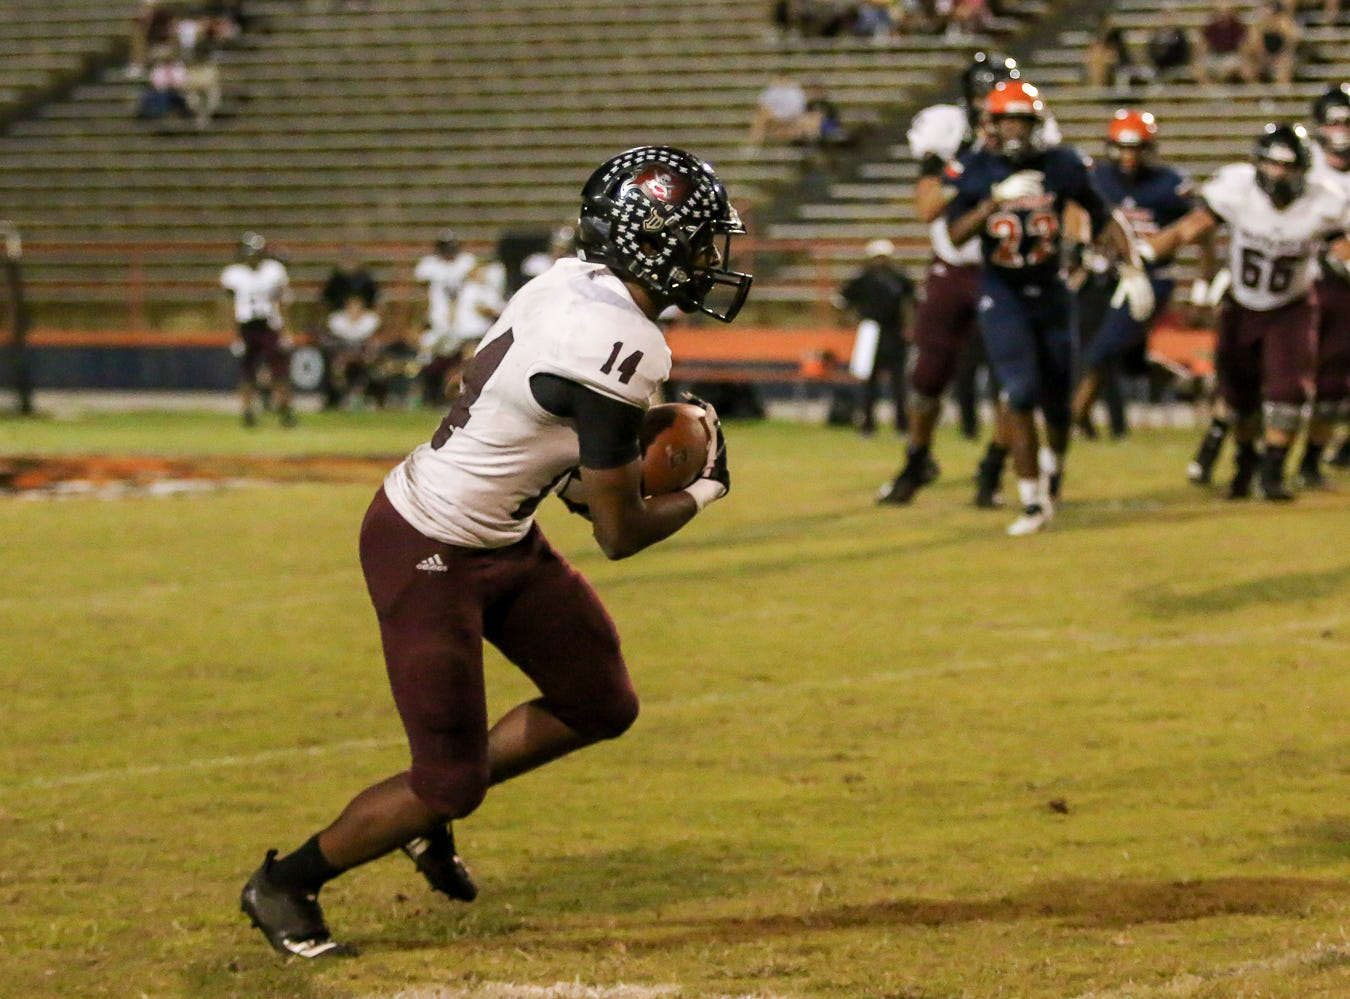 Navarre wide receiver Quinn Caballero (14) catches a pass from quarterback Marlon Courtney III and heads up the field against the Gators at Escambia High School on Friday, October 5, 2018.